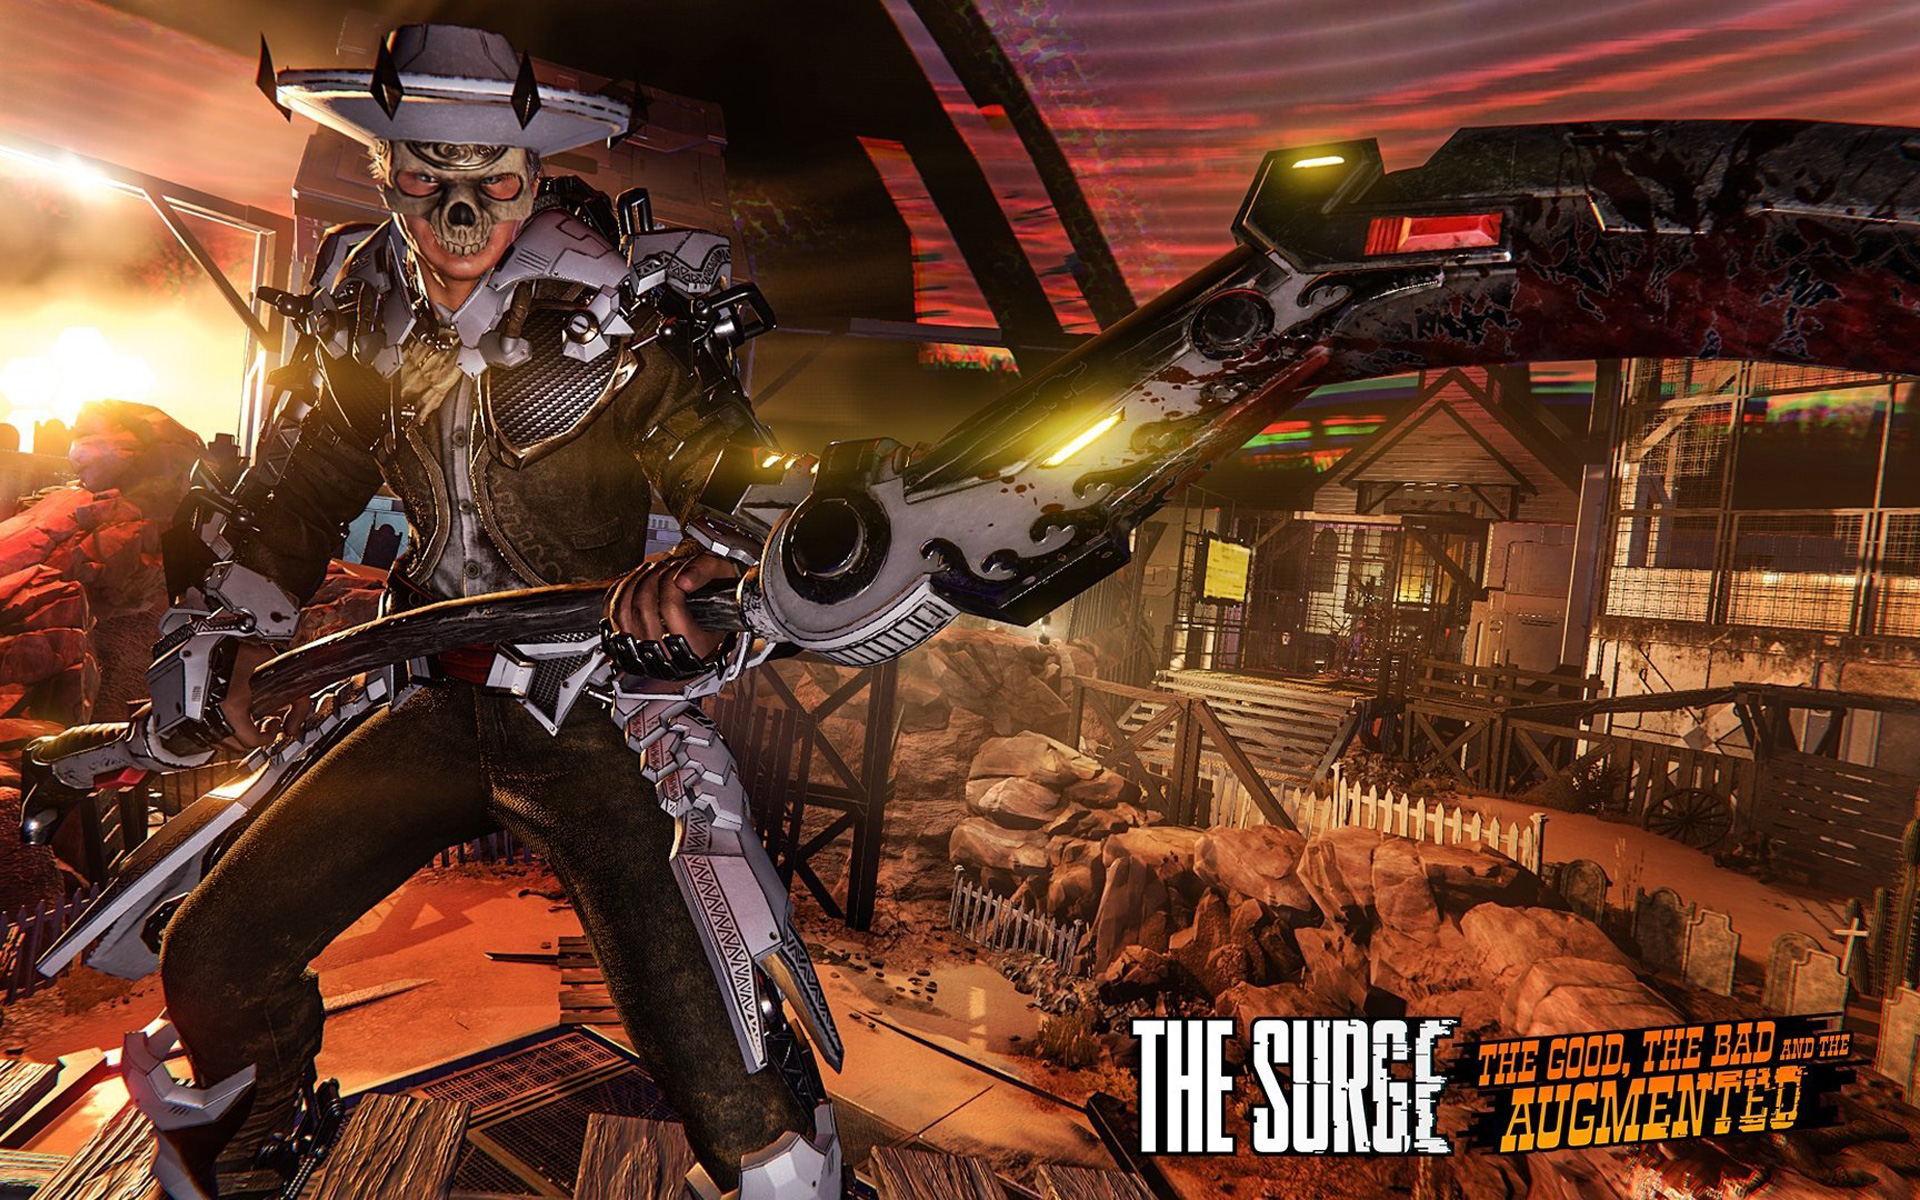 Free The Surge Wallpaper in 1920x1200